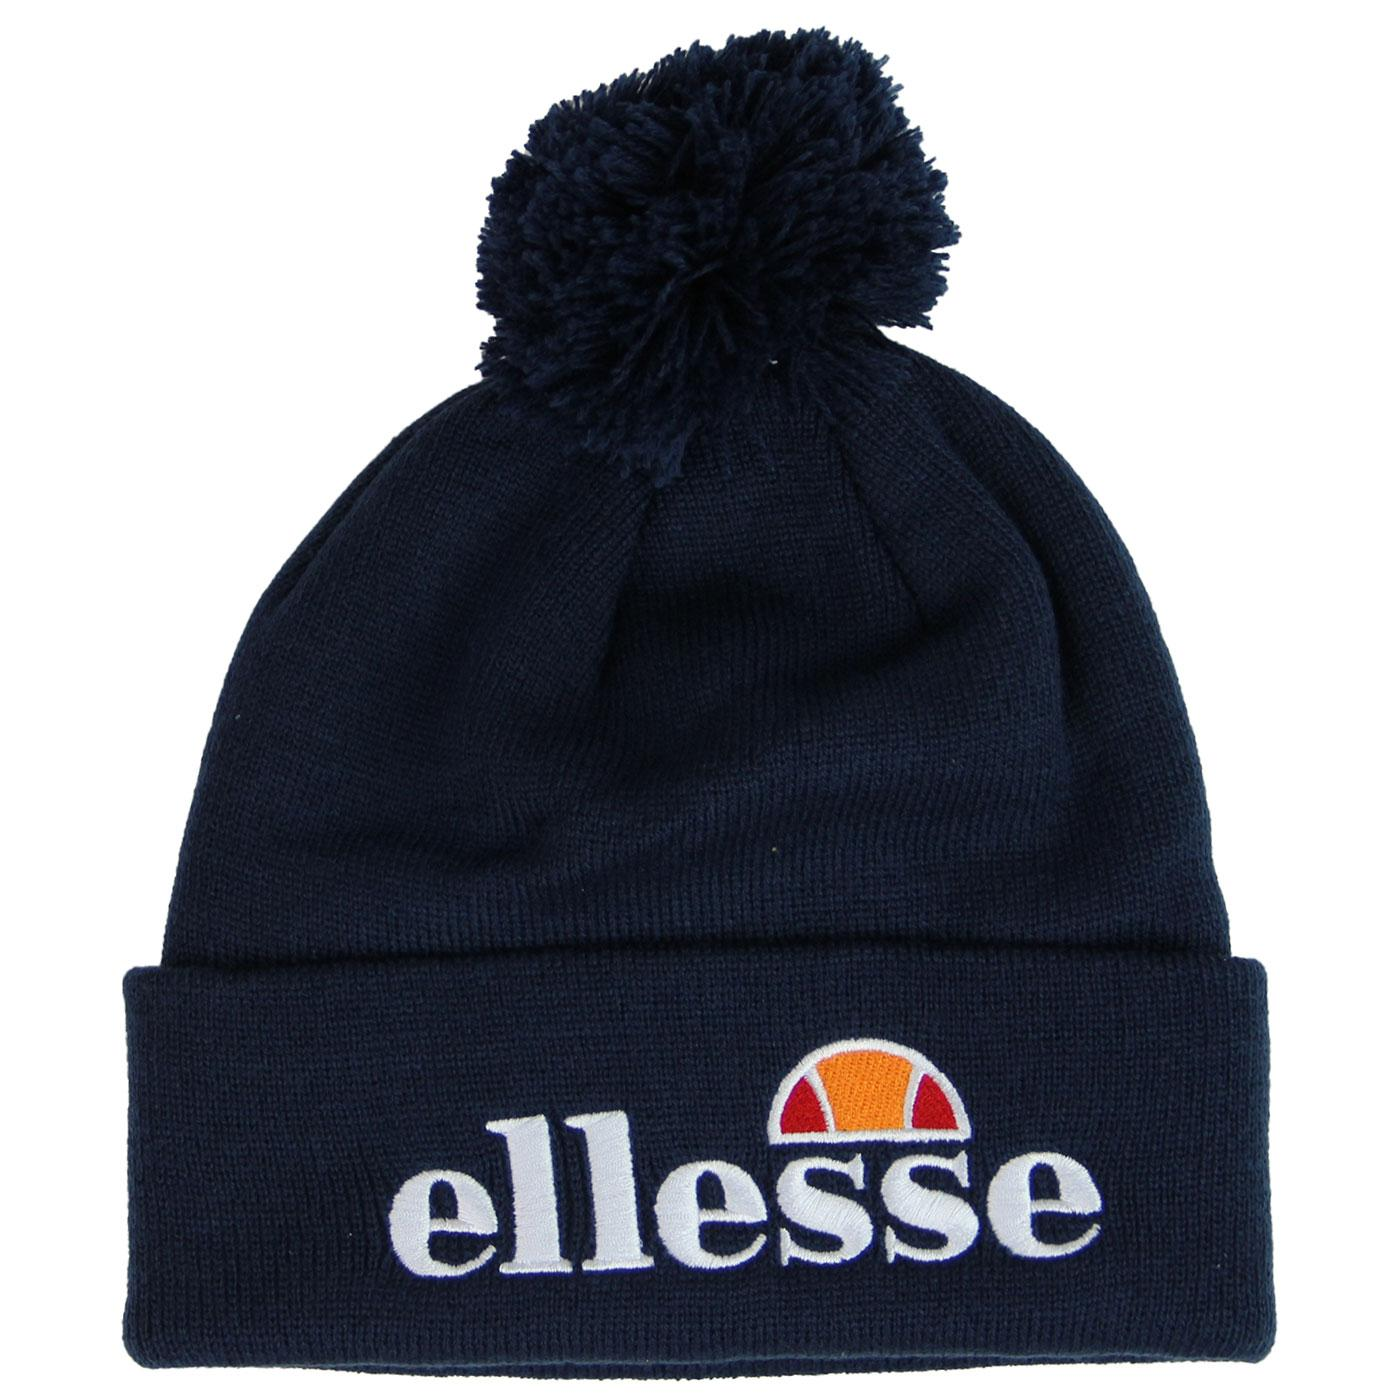 Velly ELLESSE Retro 80's Knitted Logo Bobble Hat